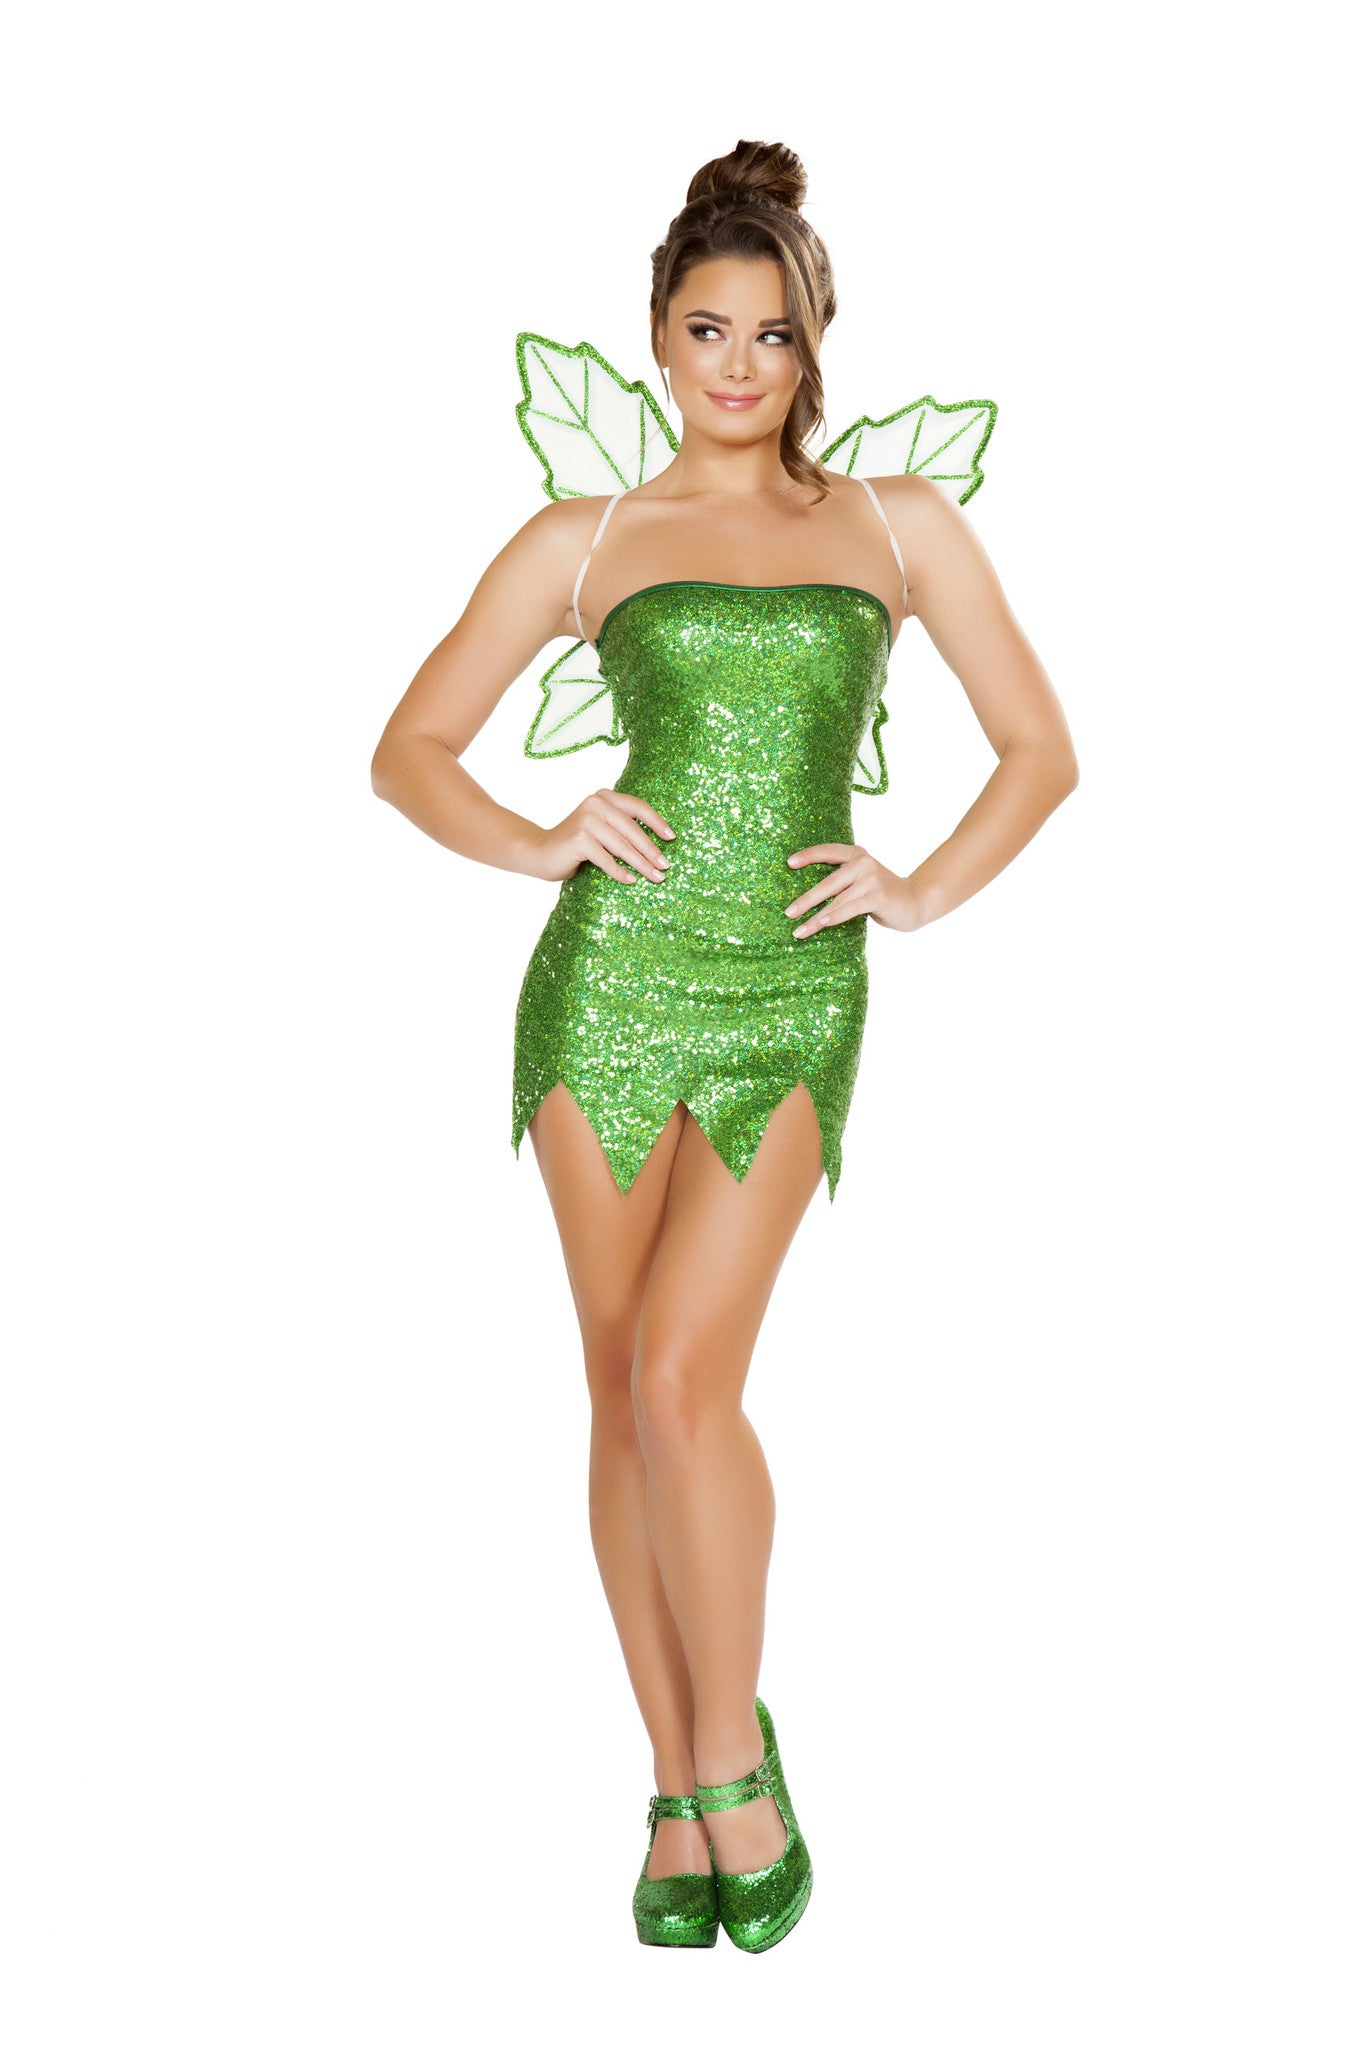 4732 - 2pc Mischievous Fairy ${description} | Roma Costume and Roma Confidential wholesale manufacturer of Women Apparel bulk world wide wholesale and world wide drop ship services for Adult Halloween Costumes, Sexy and Elegant Lingerie, Rave Clothing, Club wear, and Christmas Costumes. Costumes, Roma Costume, Inc., Roma Costume, Roma Confidential, Wholesale clothing, drop ship, drop ship service, Wholesale Lingerie, Wholesale Adult Halloween Costumes, Rave Clothing, EDM Clothing, Festival Wear, Christmas Costumes, Clubwear, Club wear.